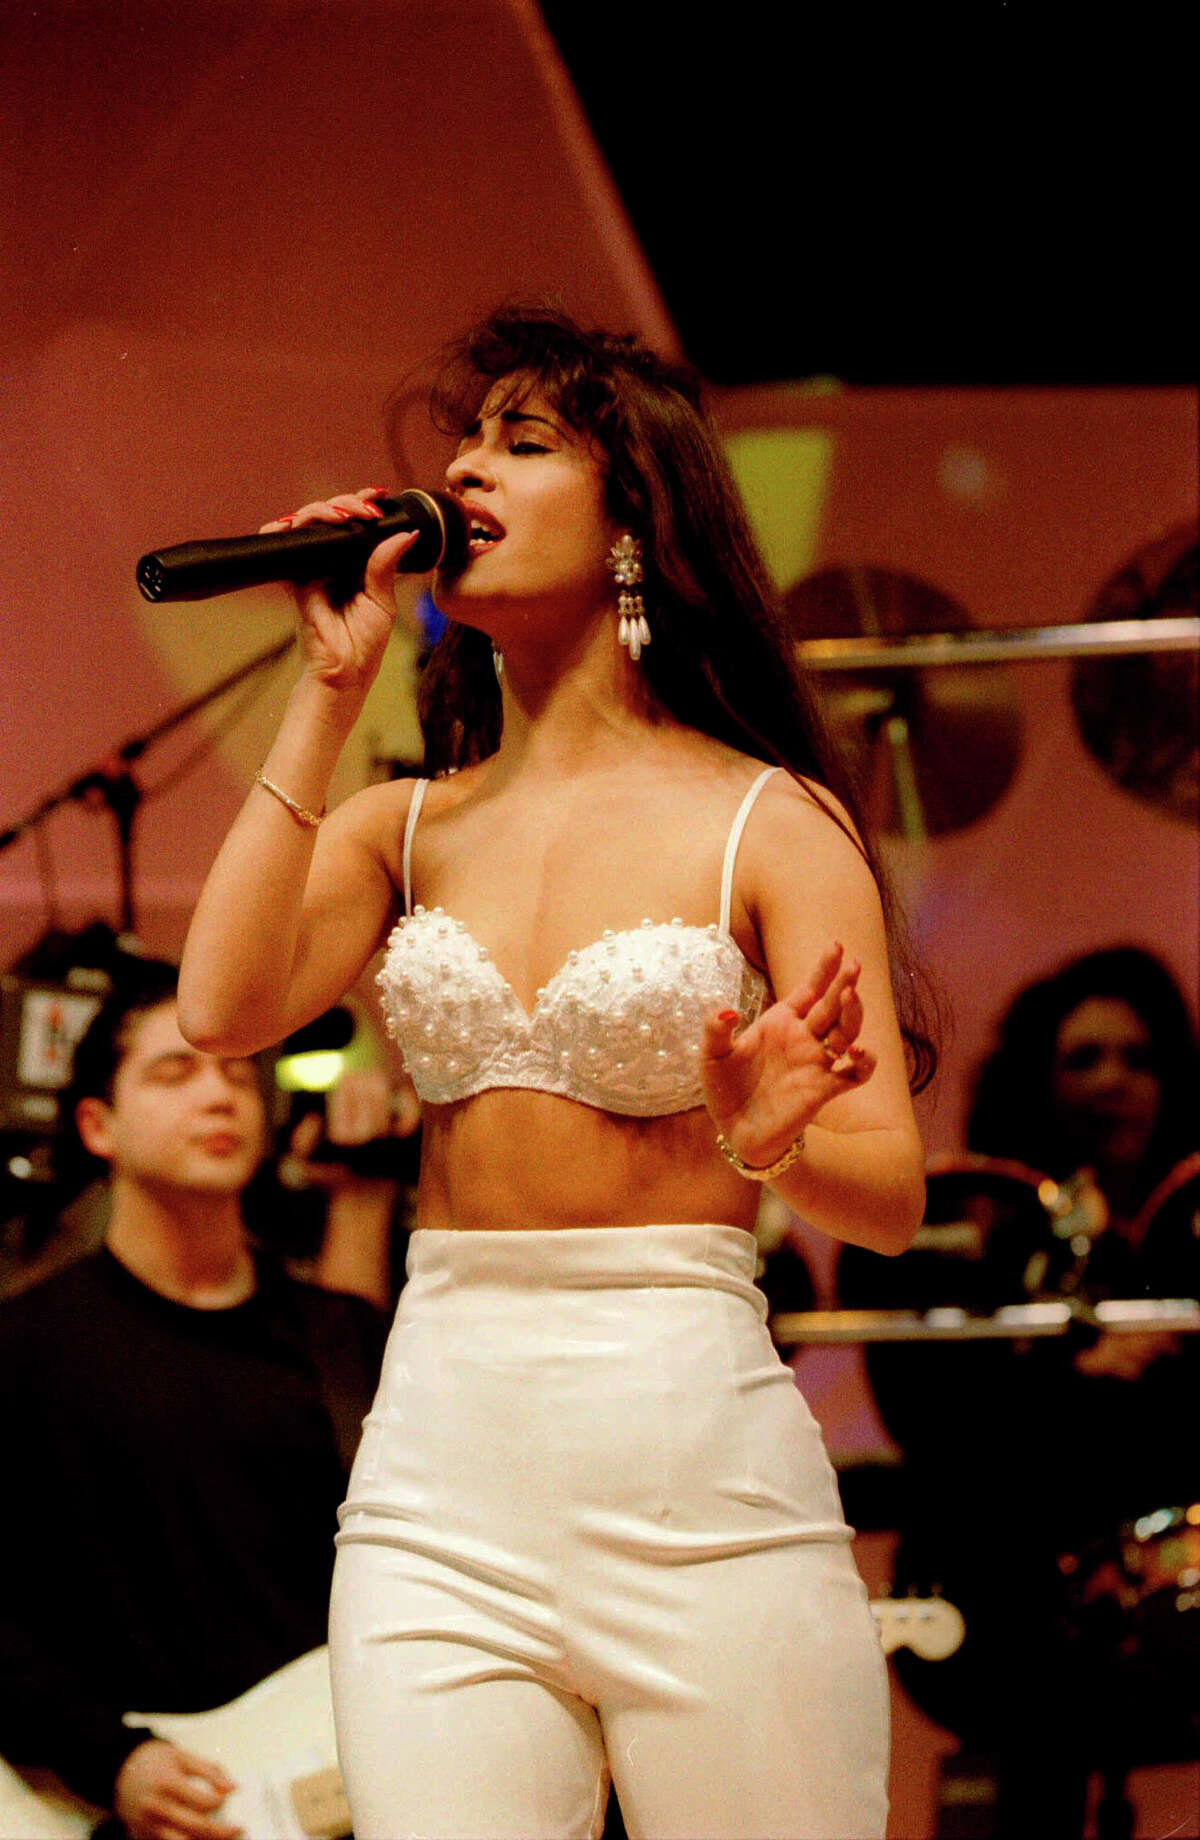 Selena performs at the Houston Livestock Show and Rodeo in 1995. Photo courtesy the Houston Chronicle.